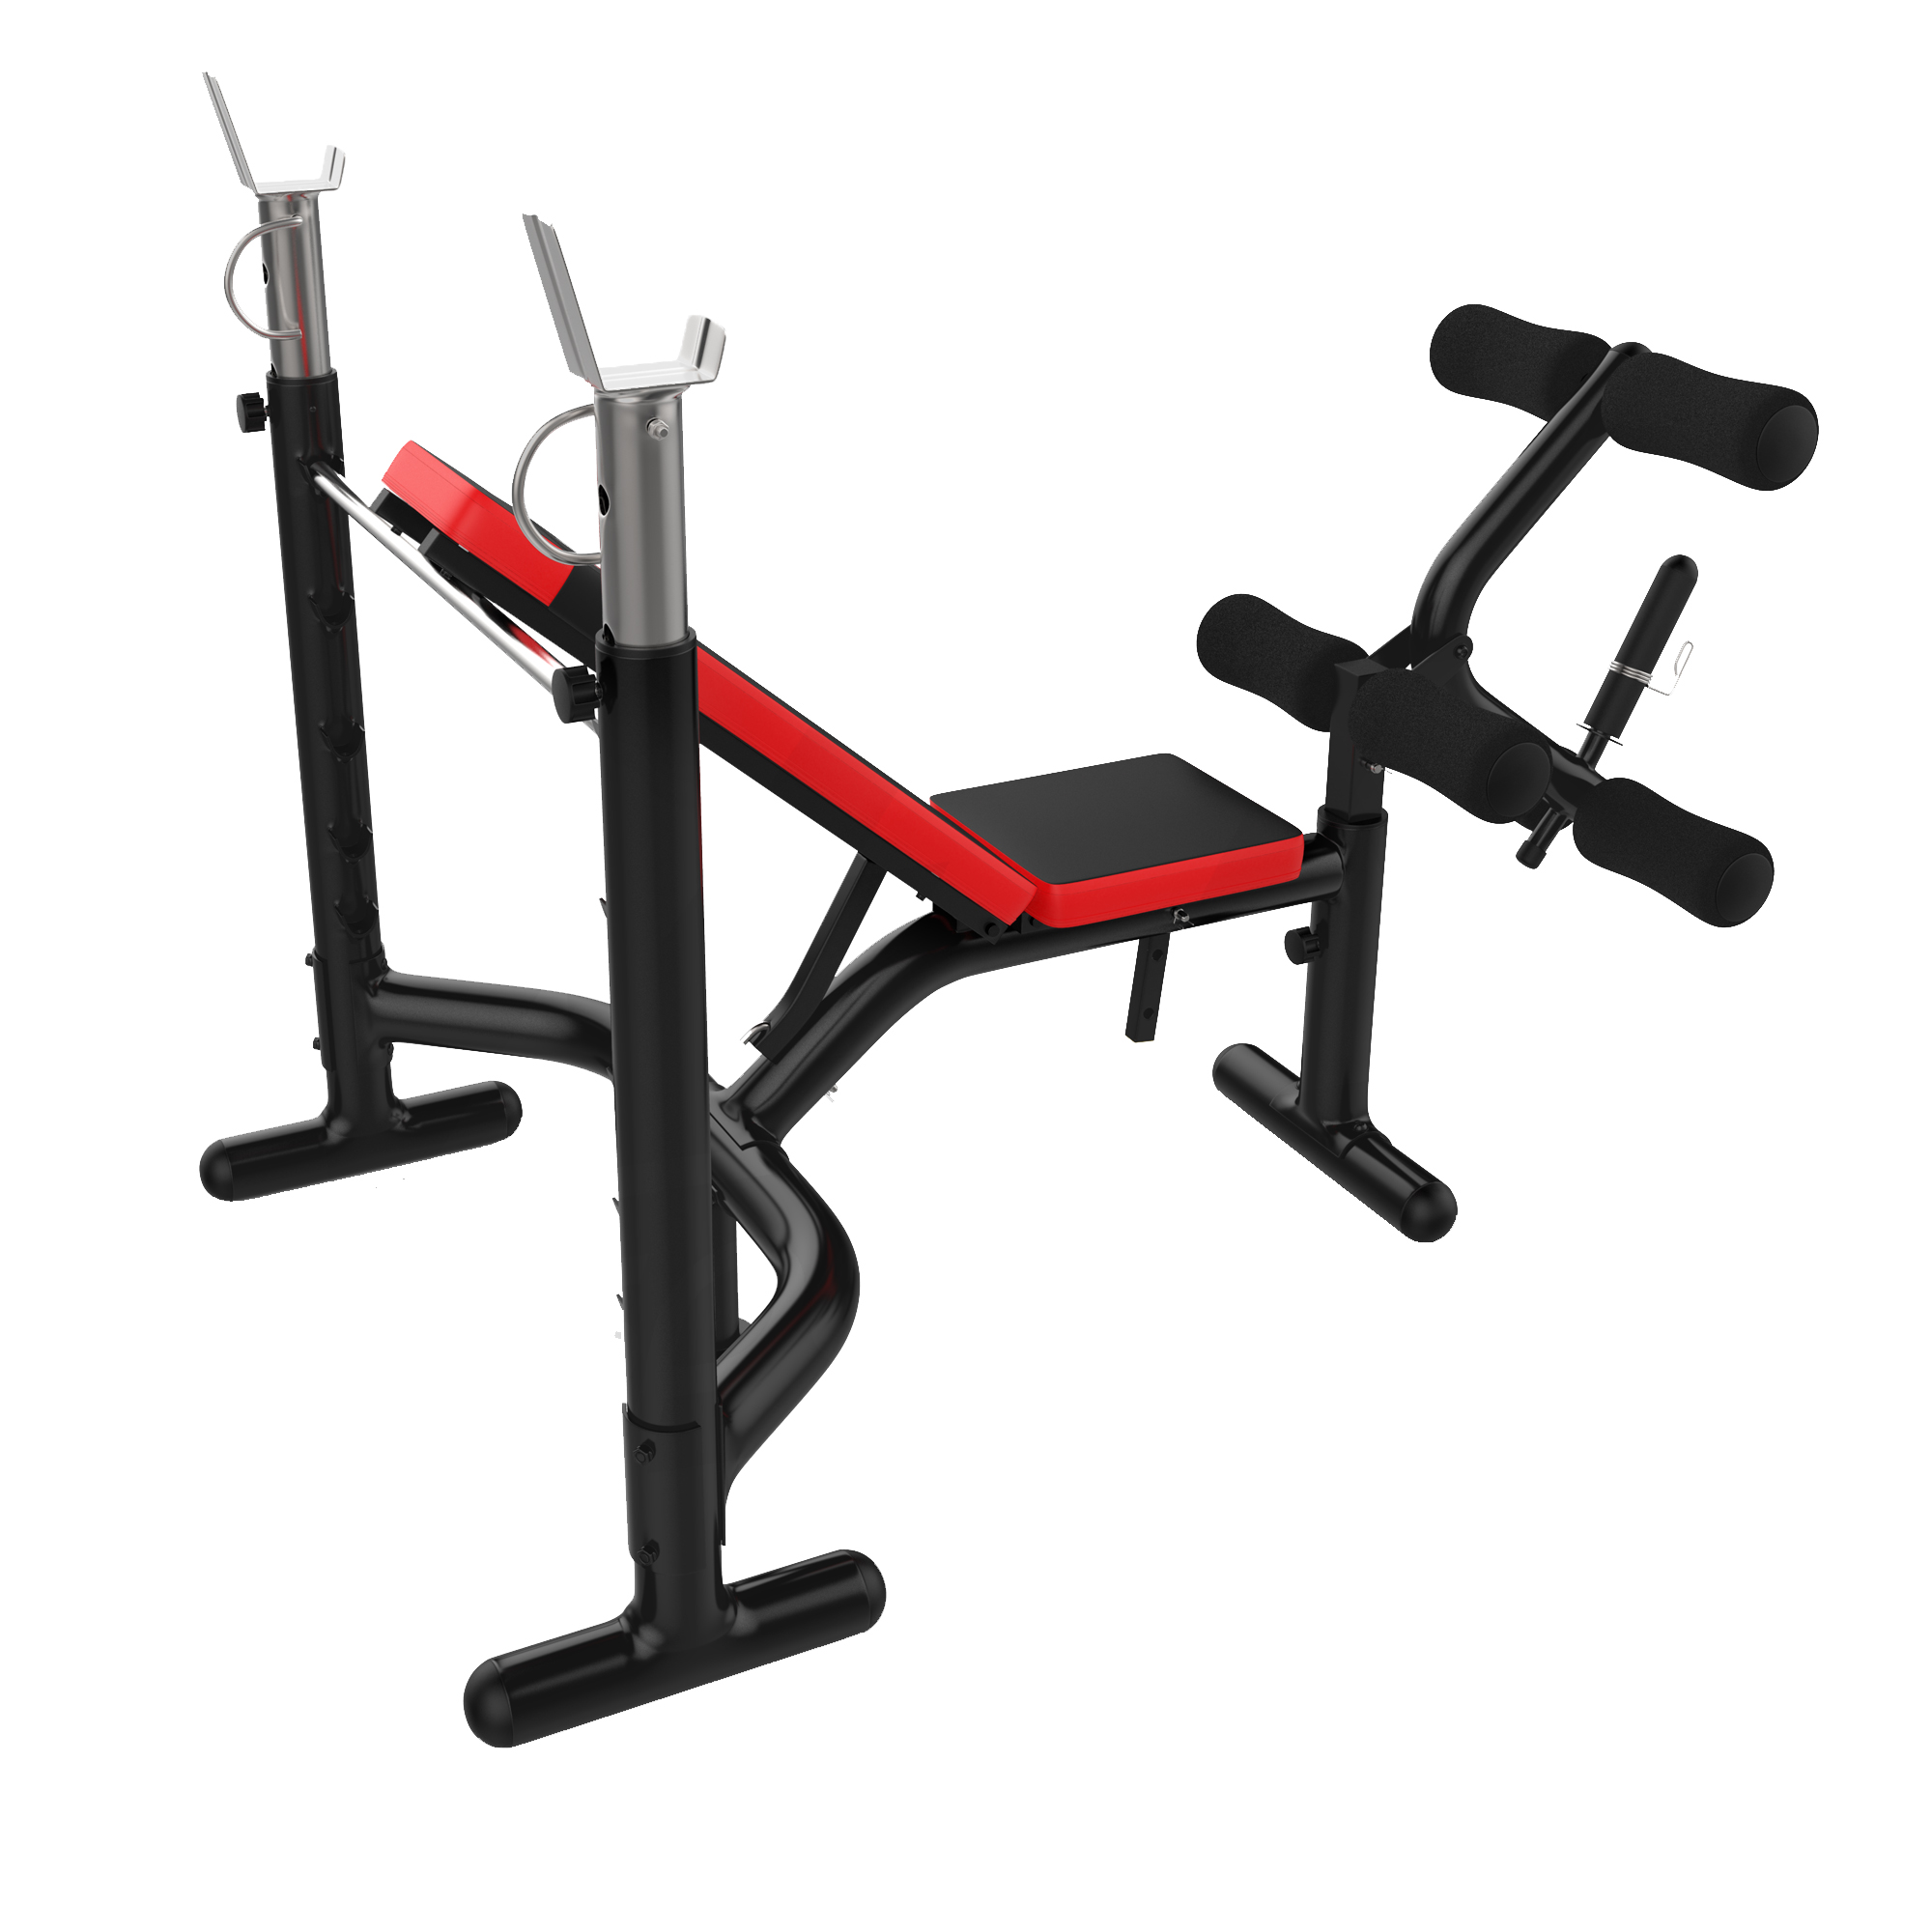 Weight Bench Adjustable Dumbbell Lifting Exercise Gym with ...